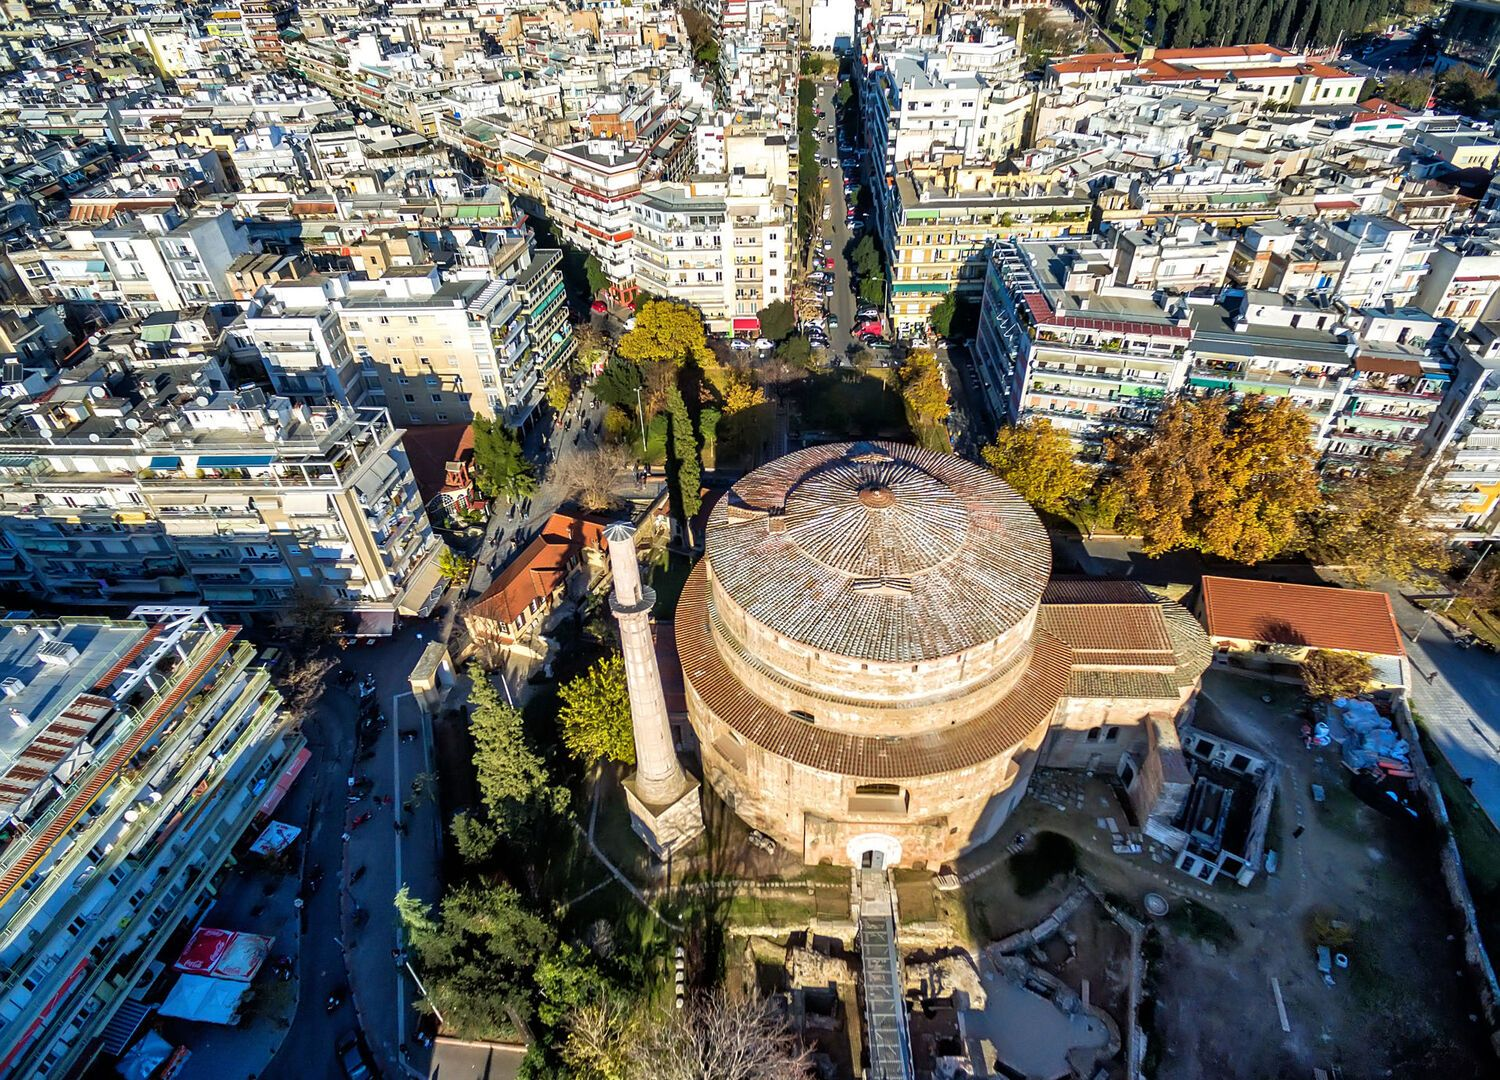 Aerial View of Rotonda in Thessaloniki